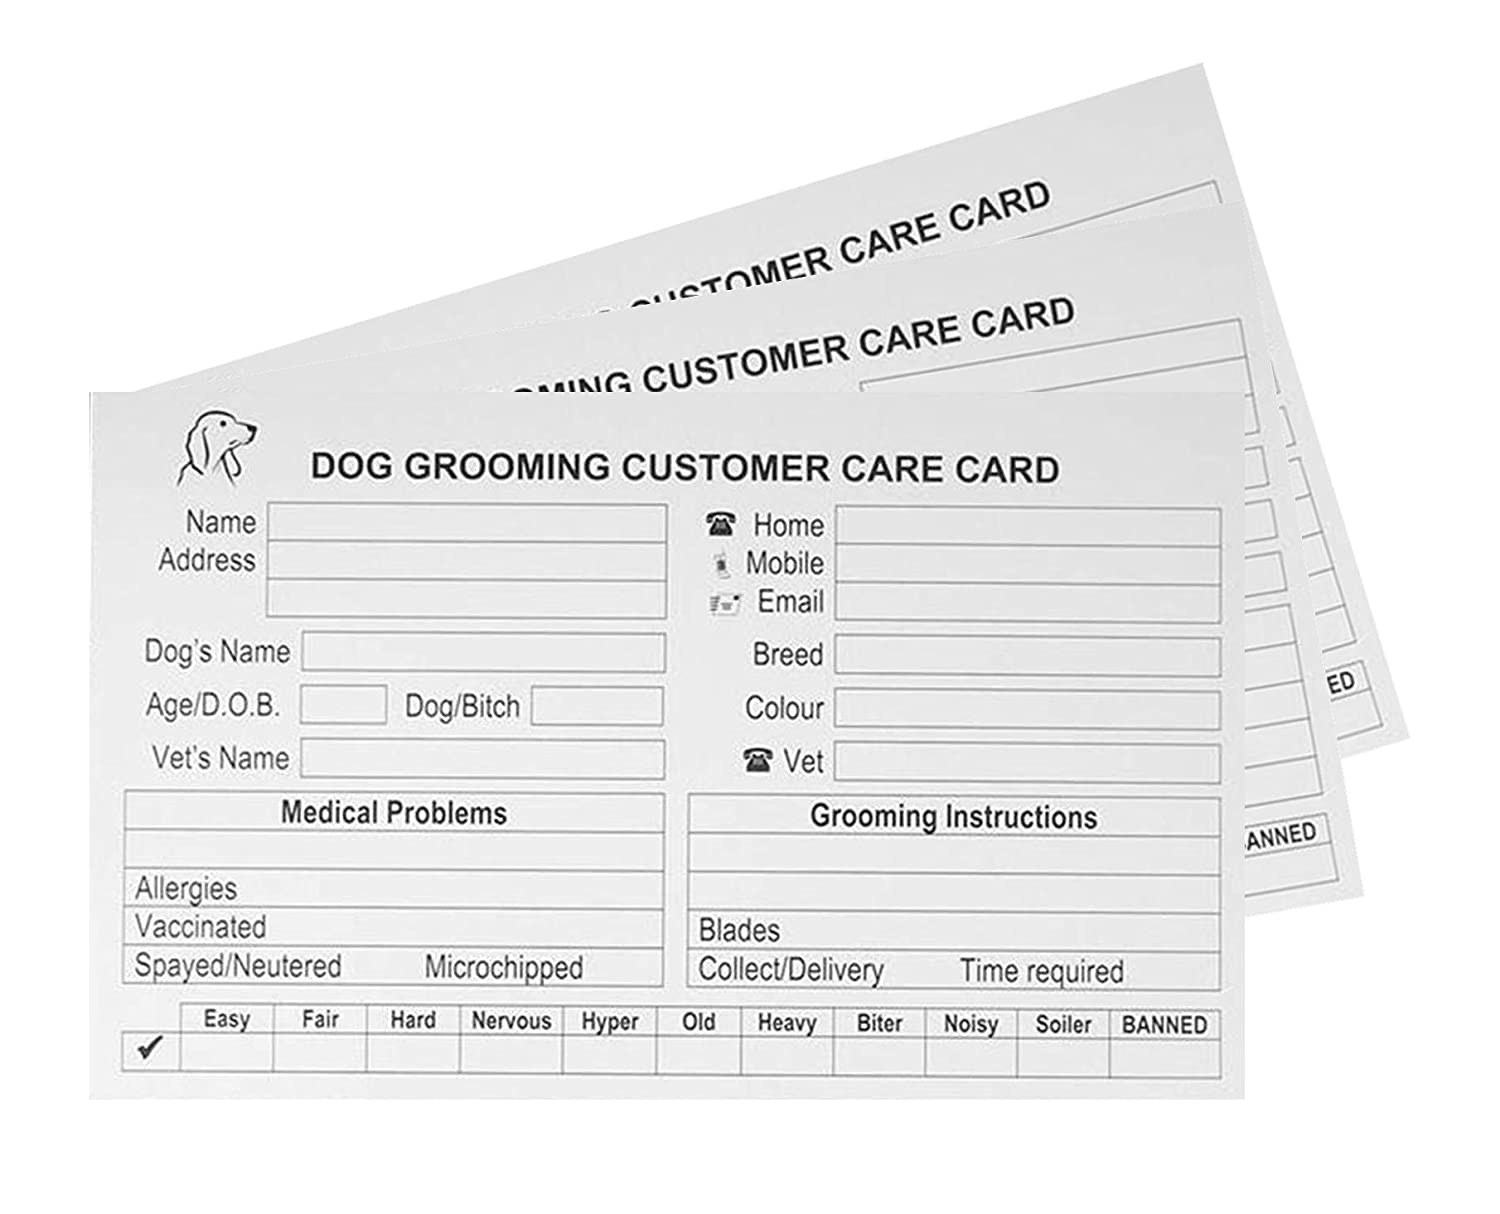 dog grooming record card template free resume templates